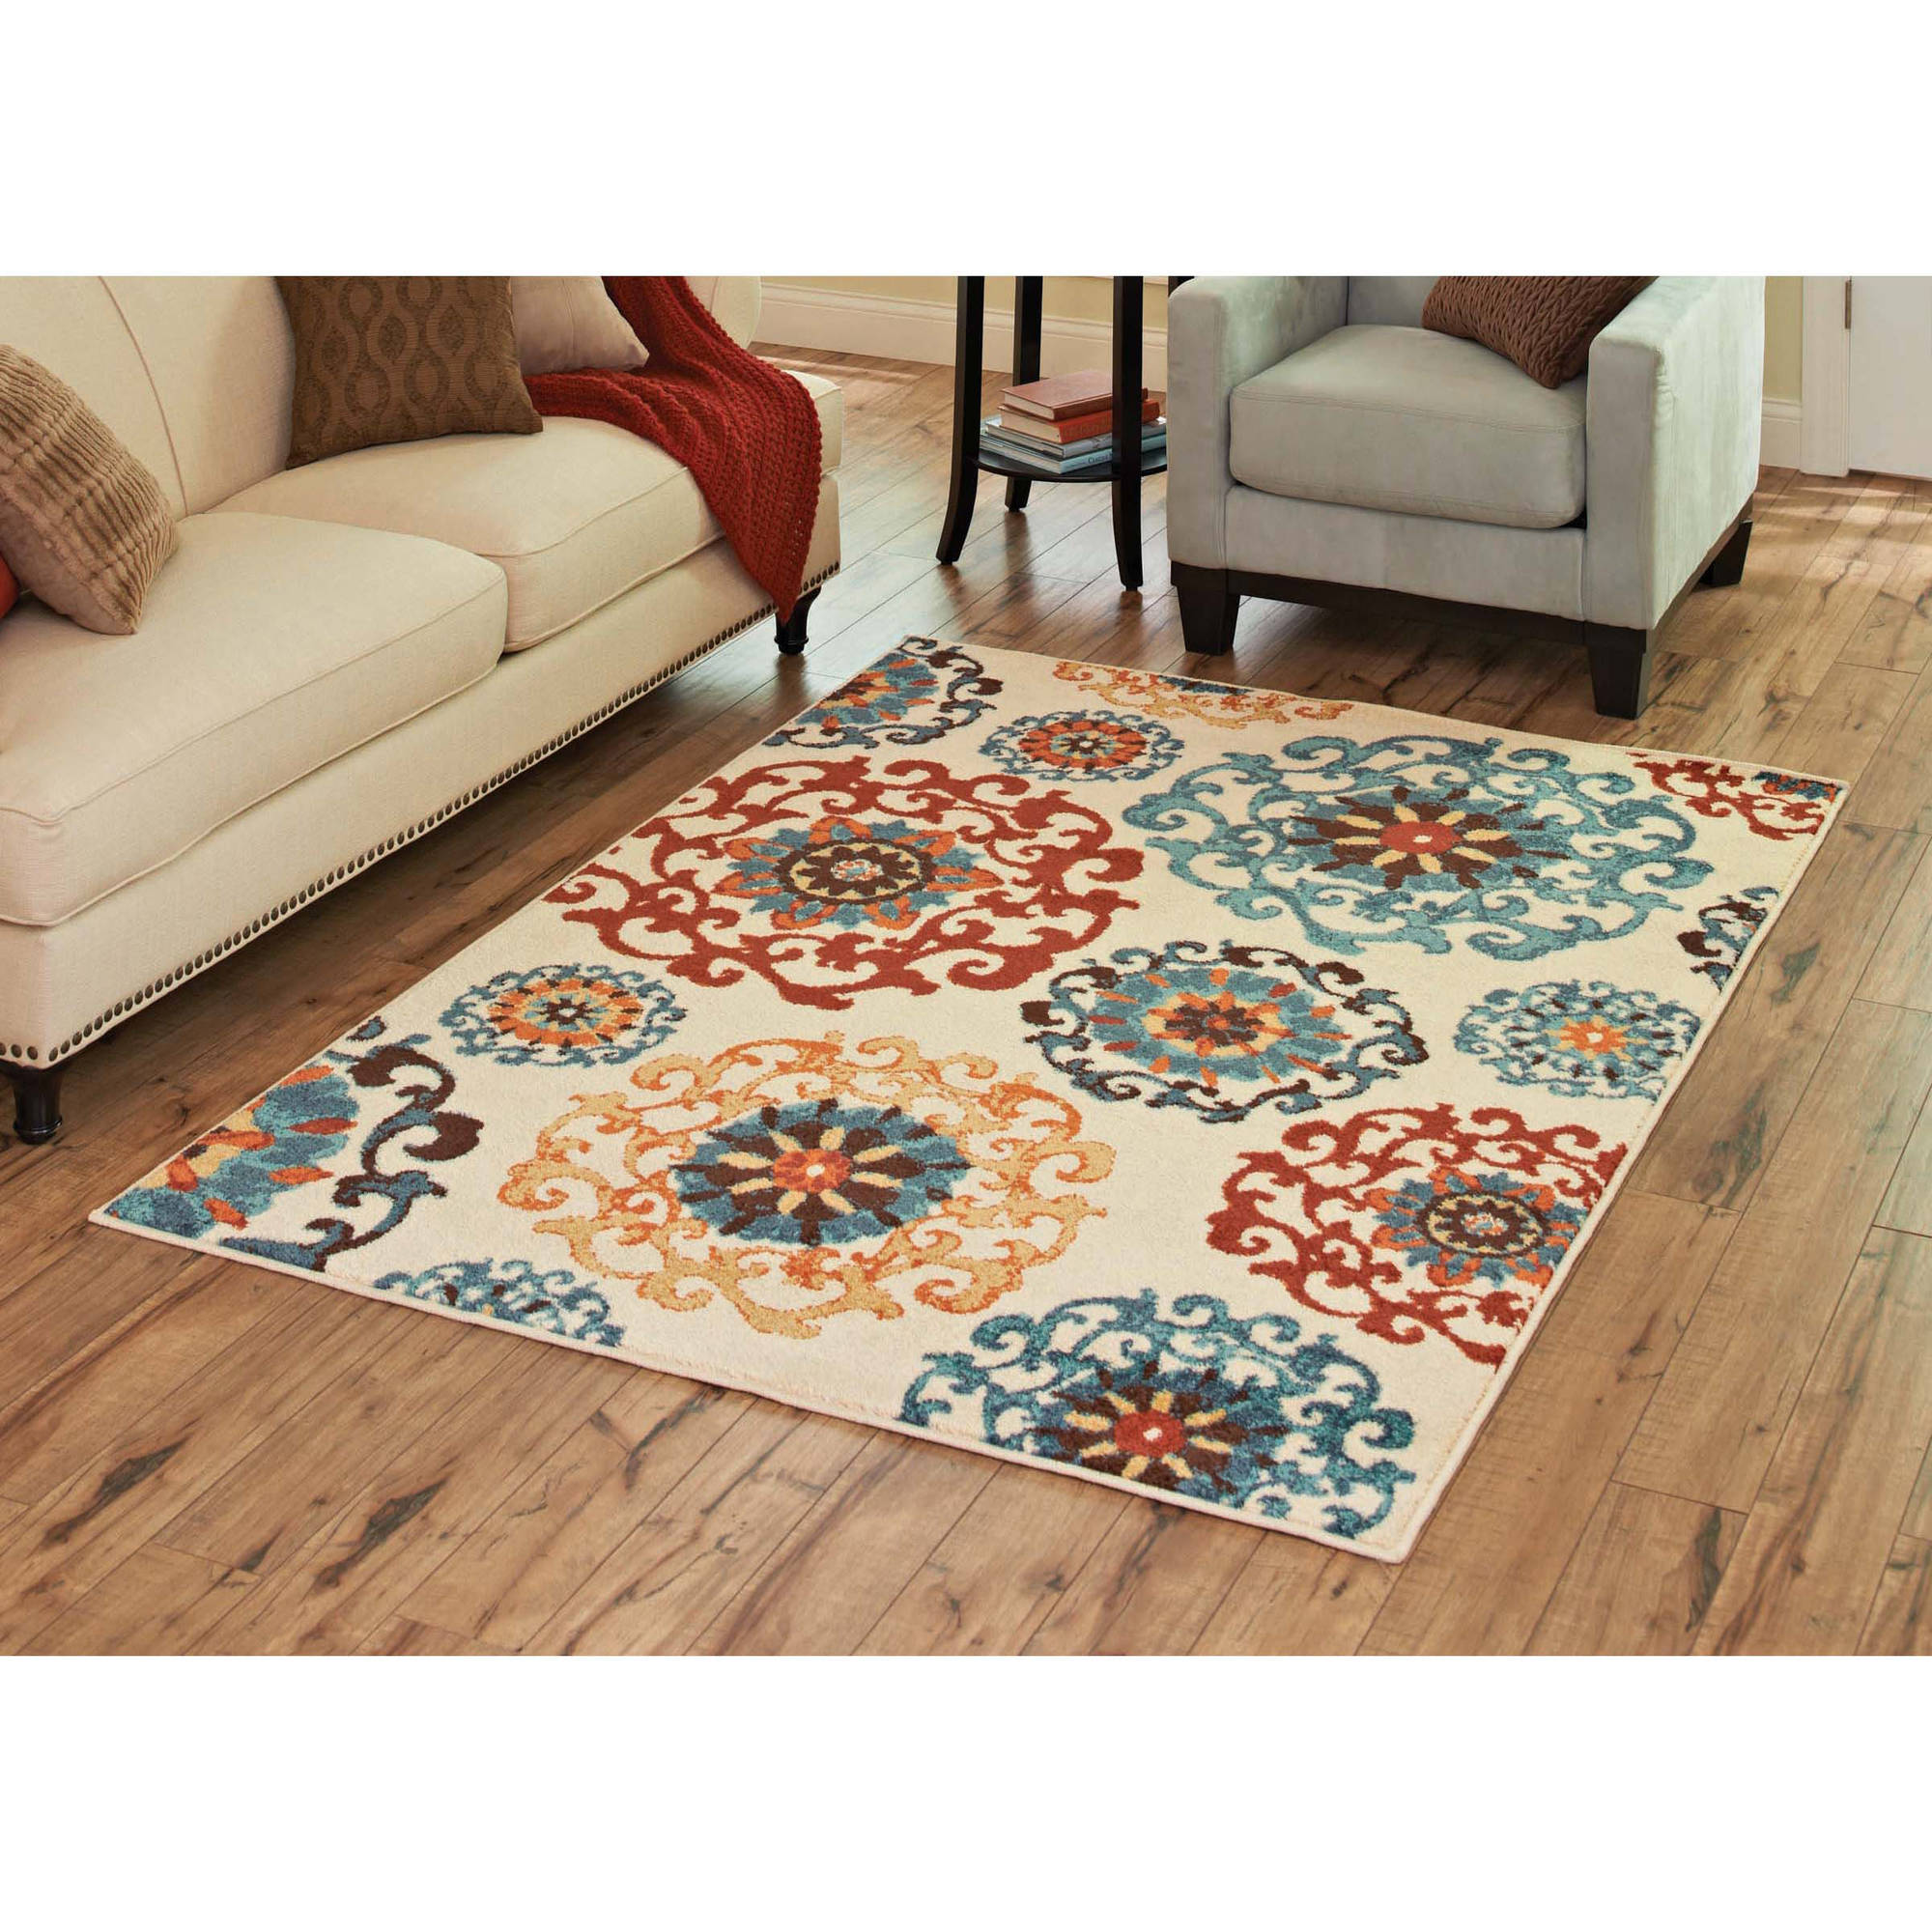 better homes and gardens suzani area rug or runner CYWYOWB